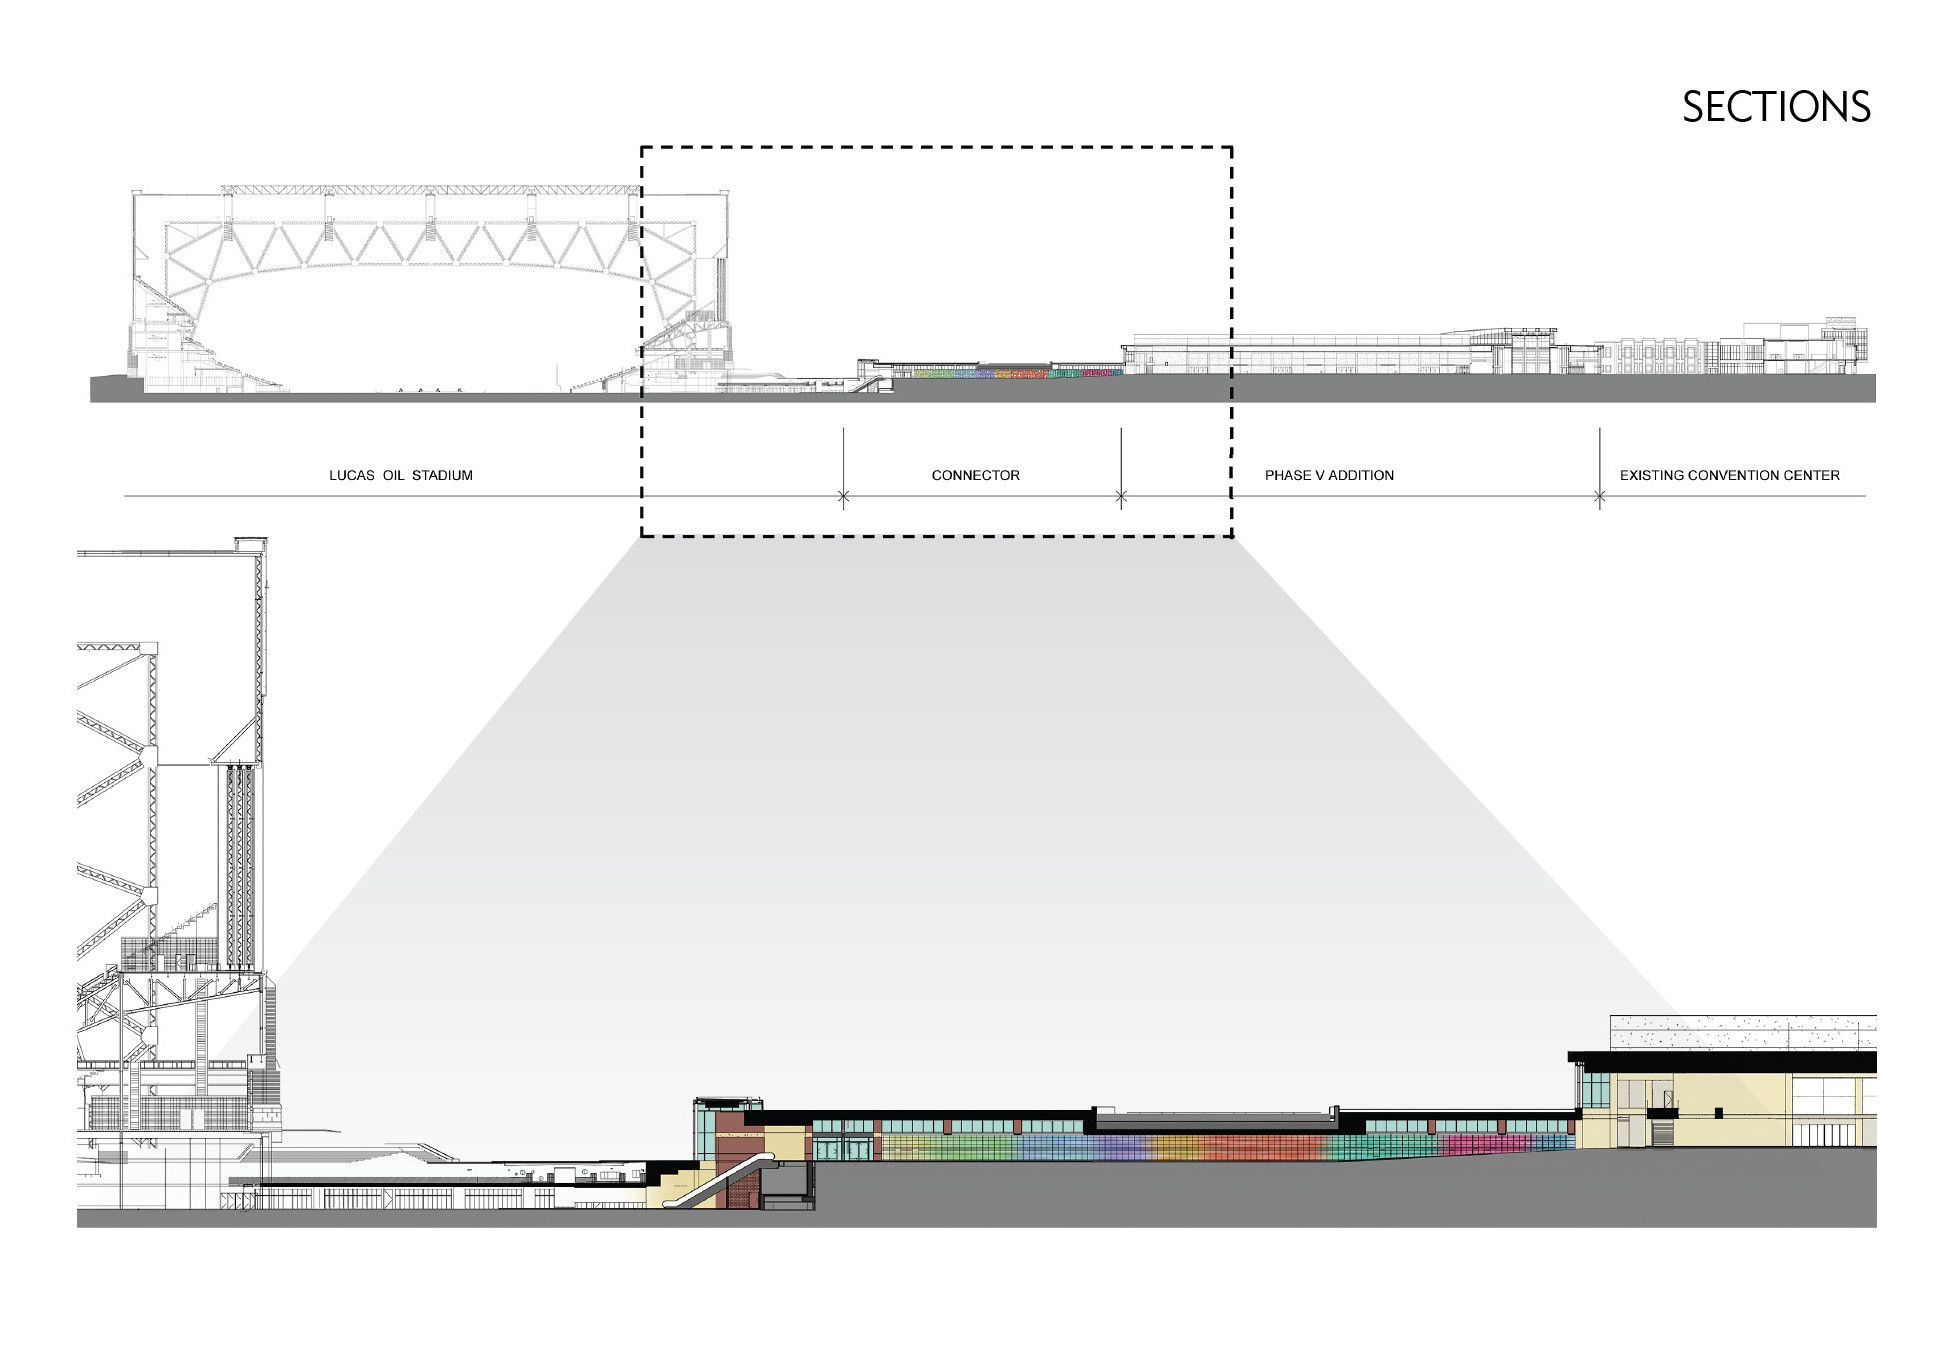 Gallery of Indiana Convention Center Expansion / RATIO